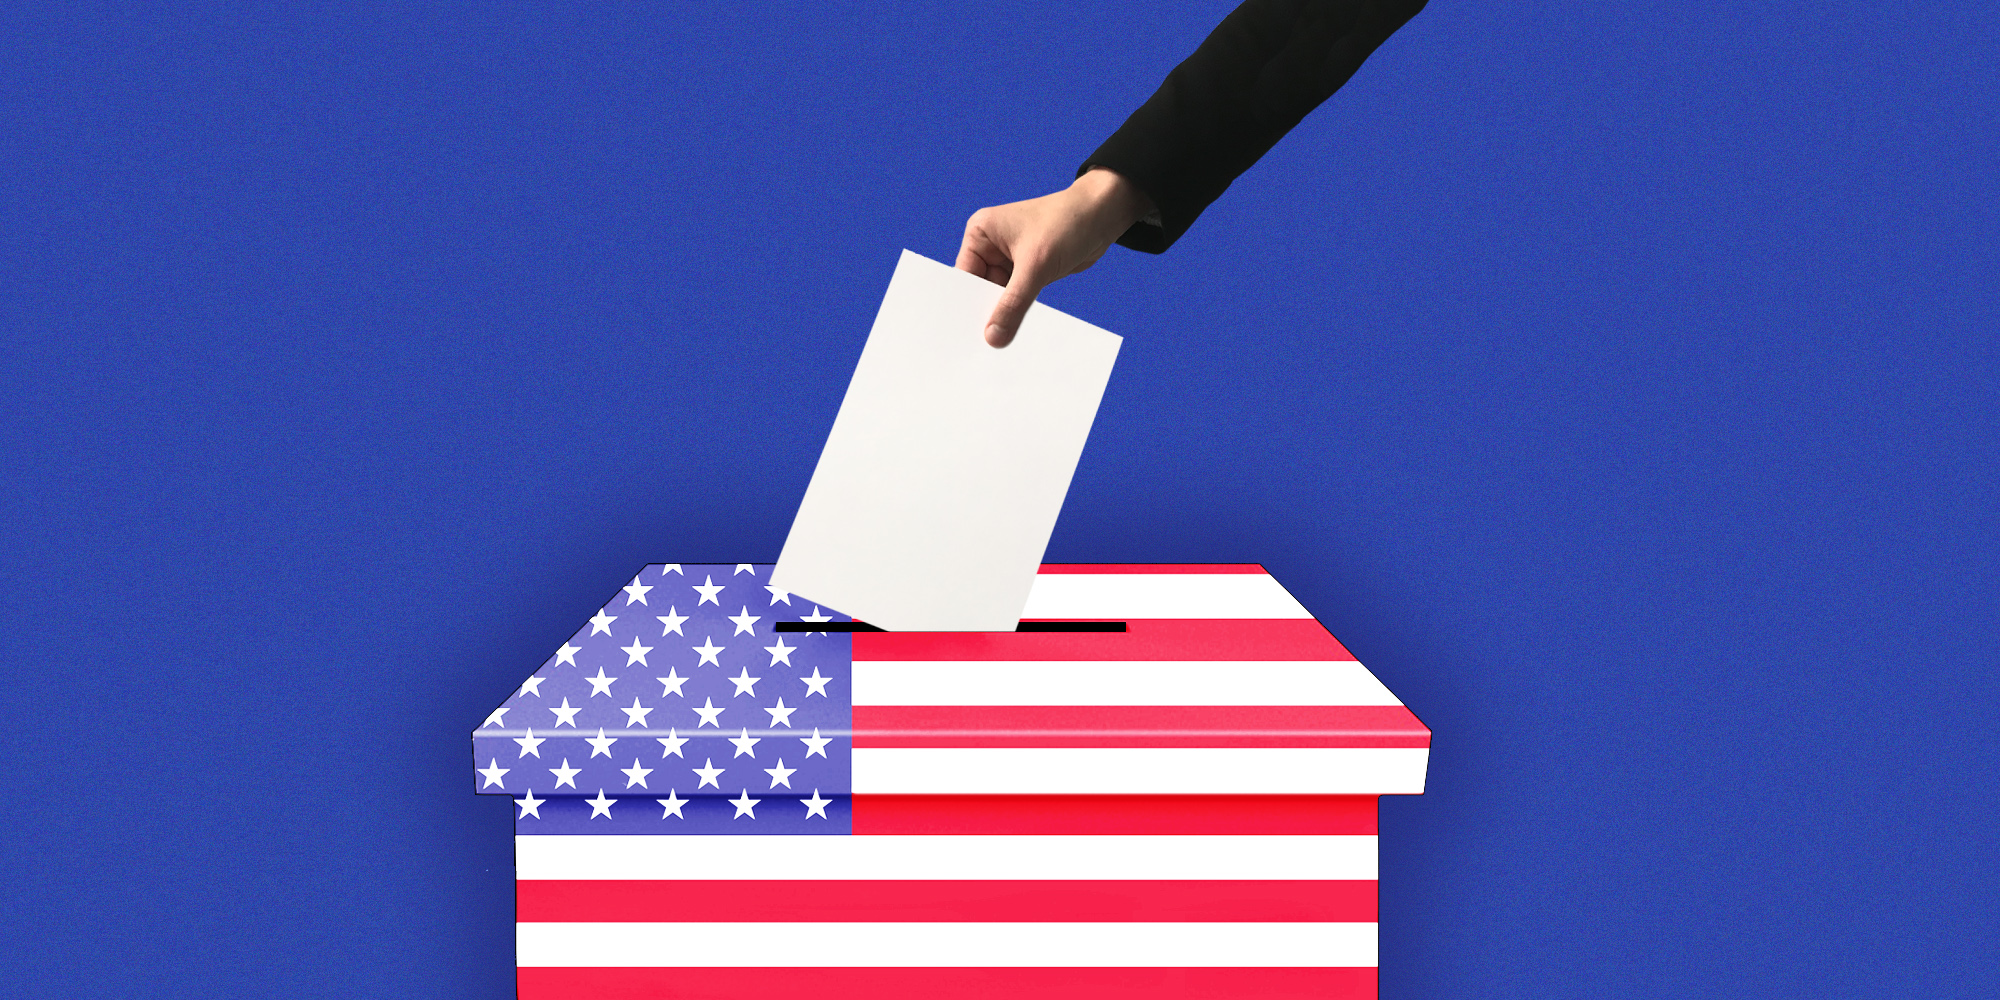 Democracy was on the ballot in 2018 -- and democracy won big